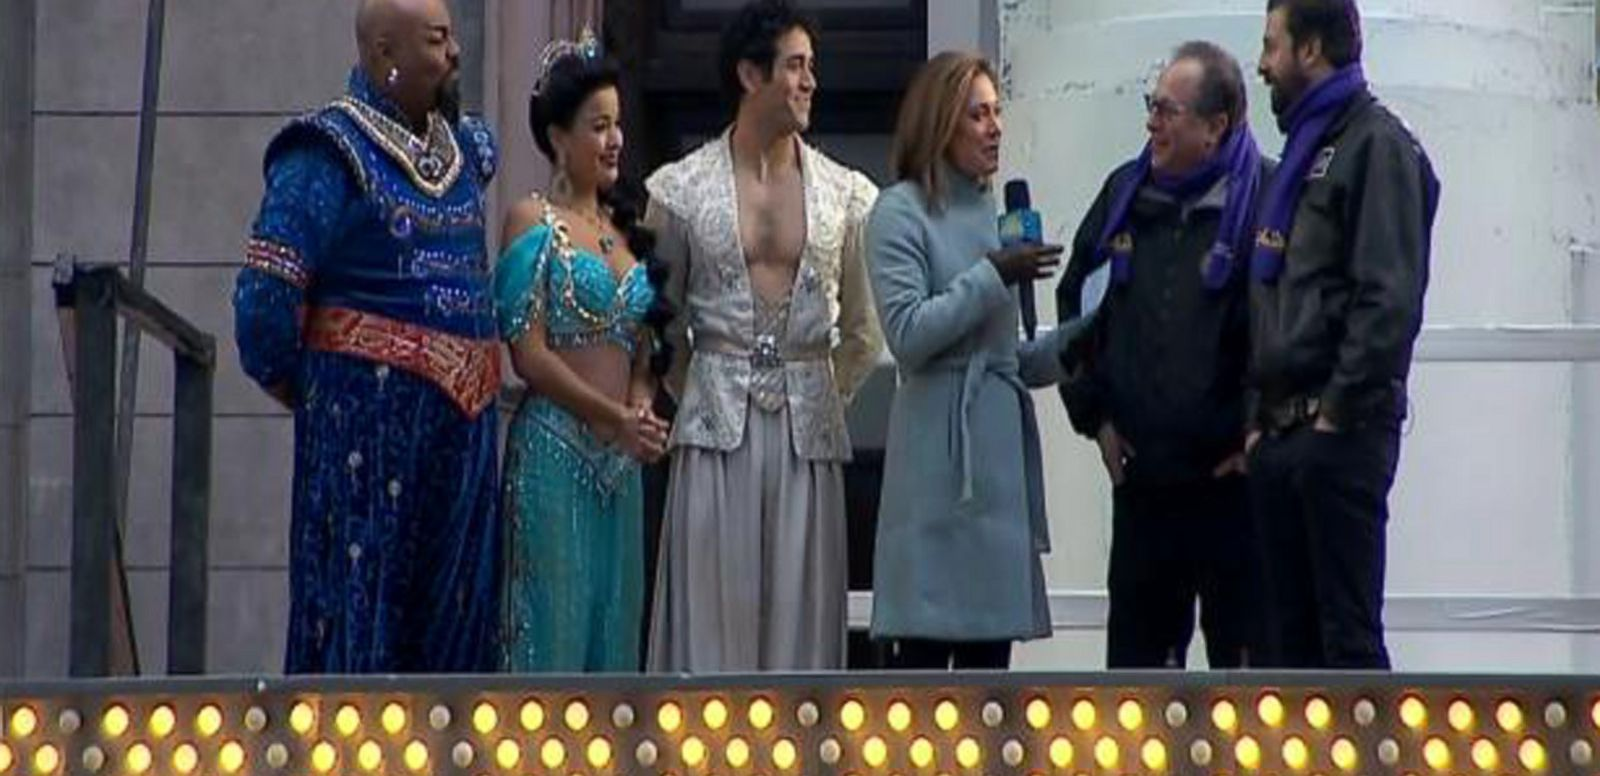 VIDEO: Broadway's 'Aladdin' to Star in Times Square New Year's Eve Party